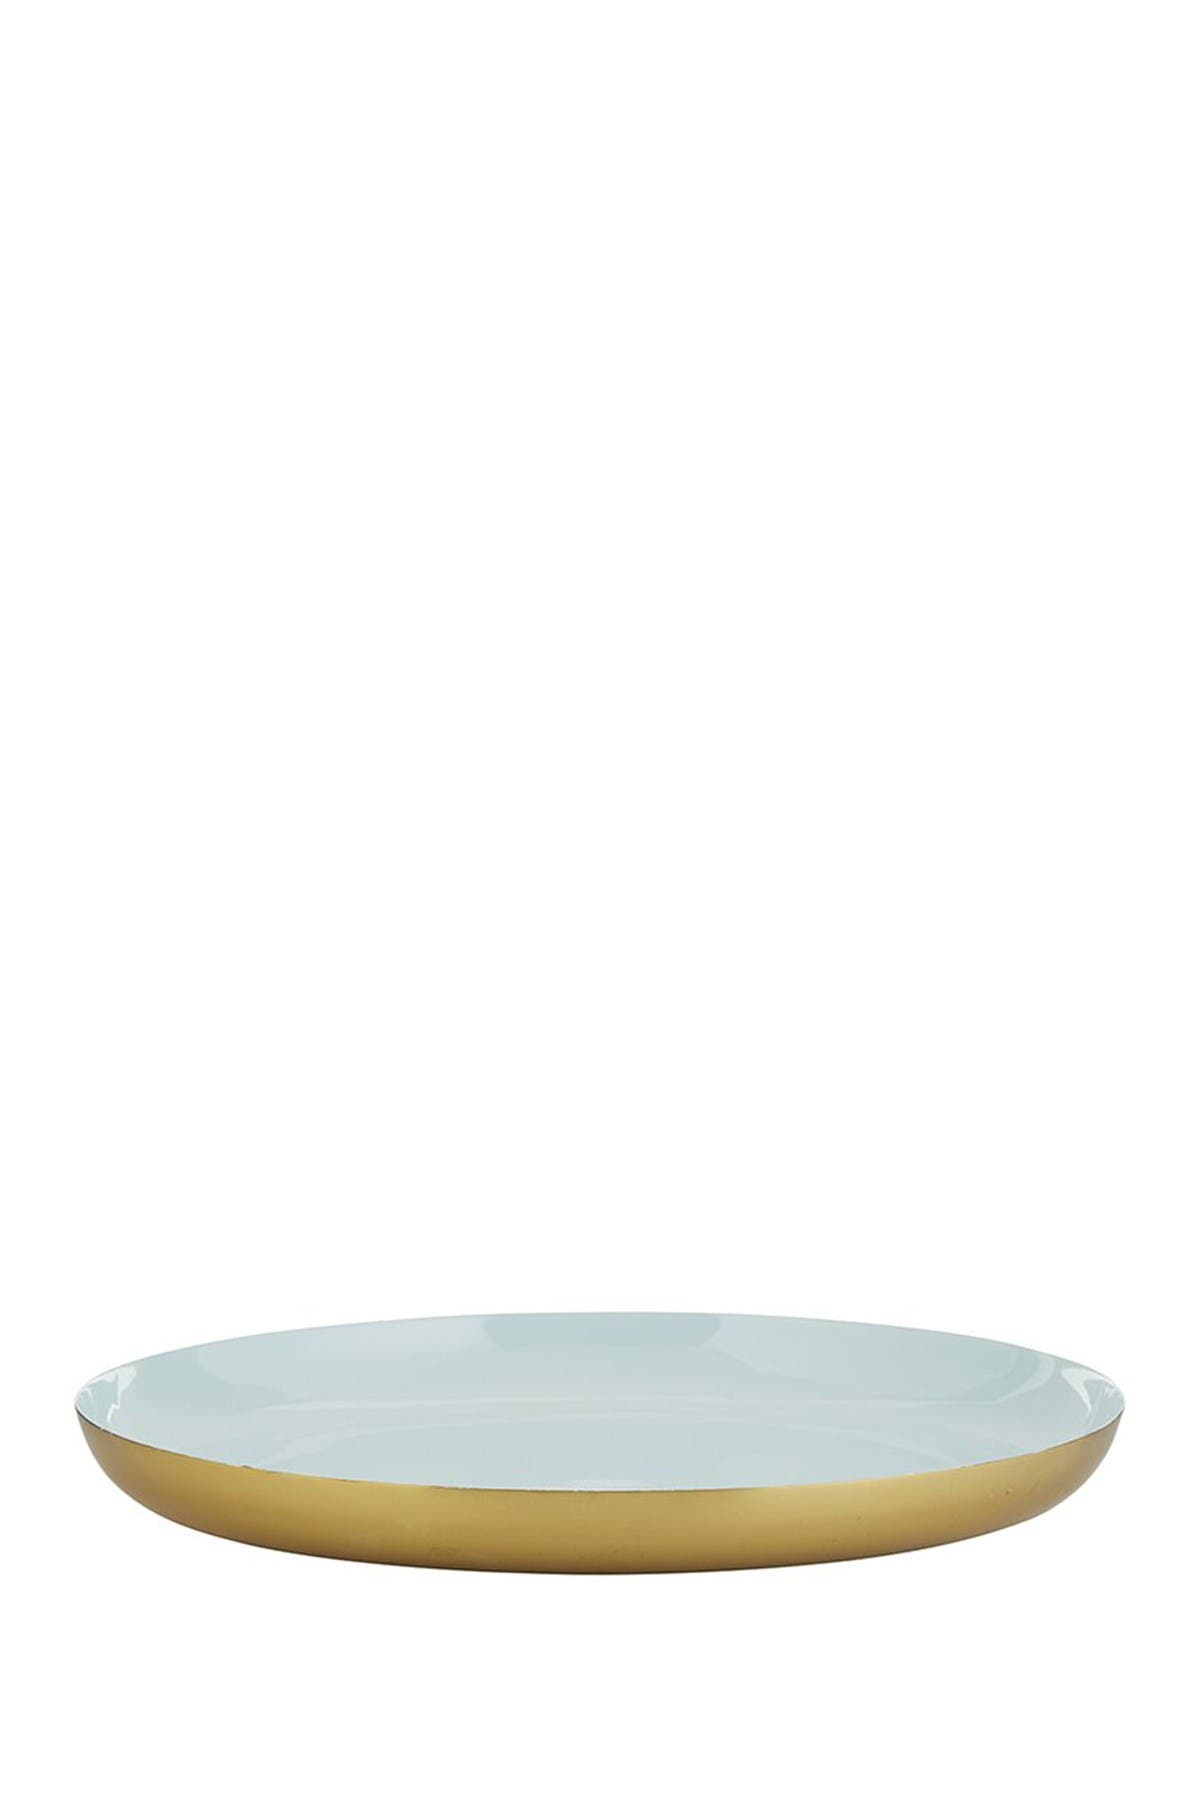 CREATIVE BRANDS Blue And Gold Round Tray